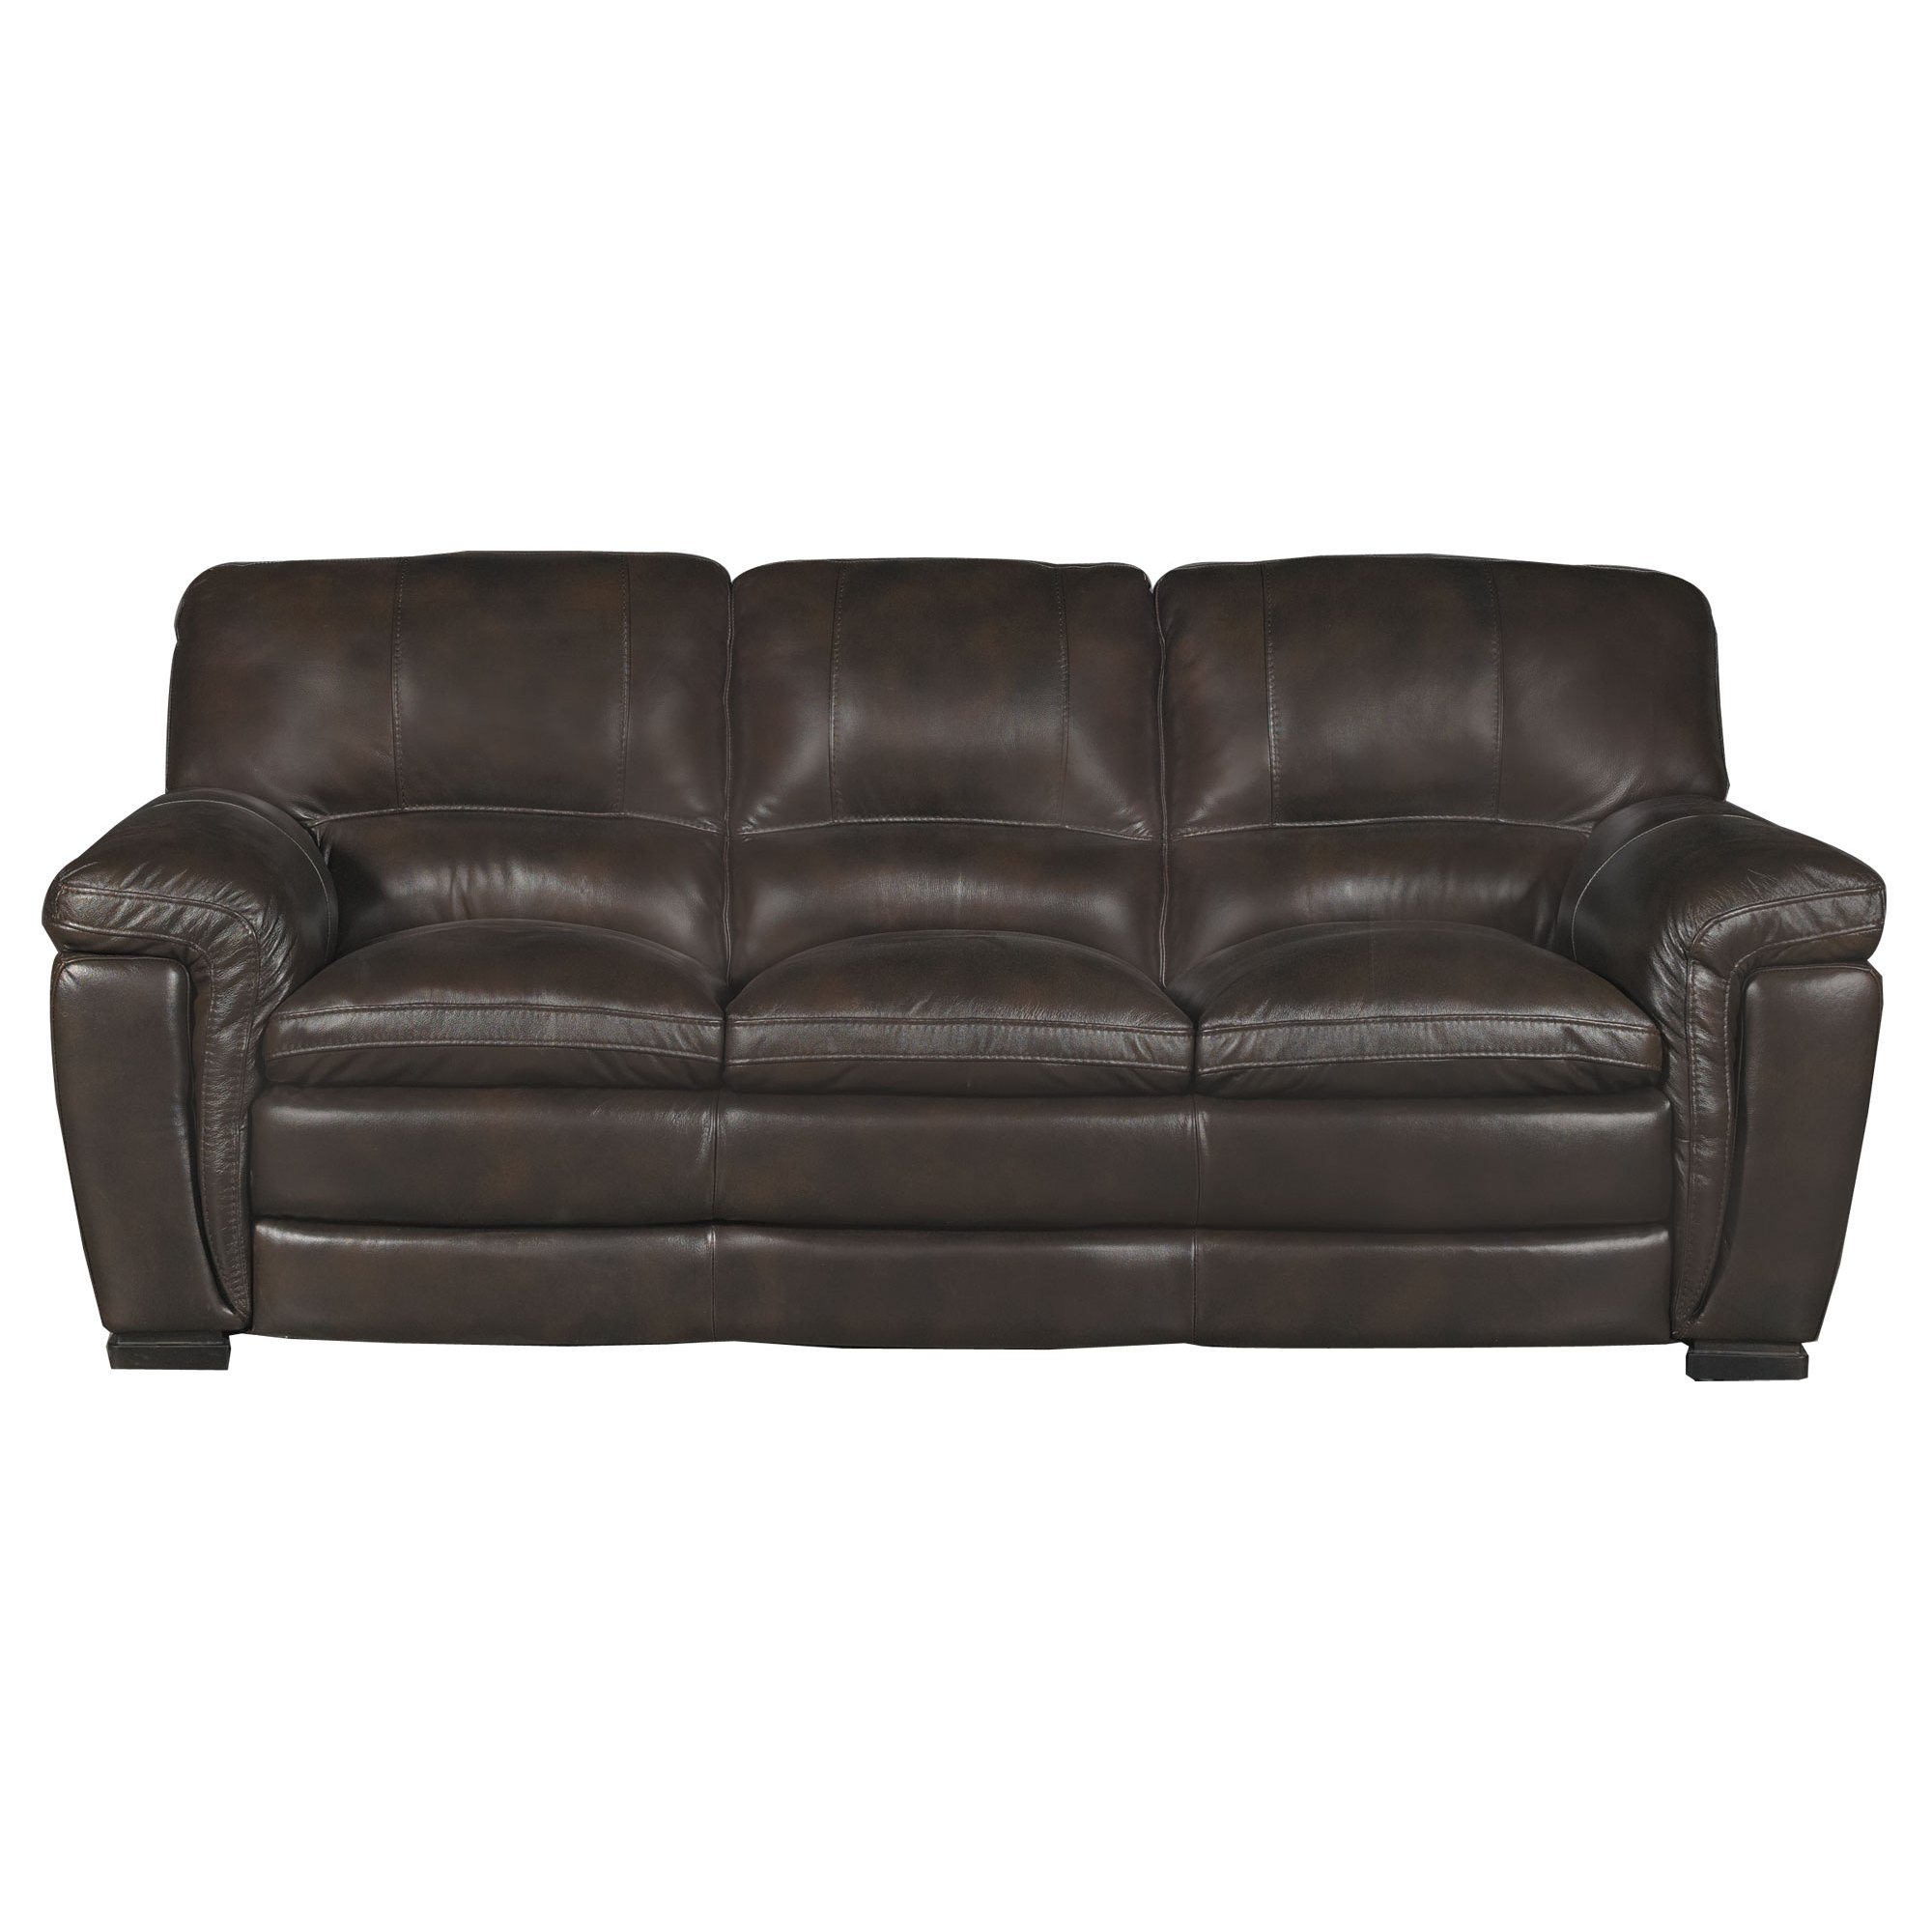 Casual Contemporary Brown Leather Sofa   Tanner | RC Willey Furniture Store